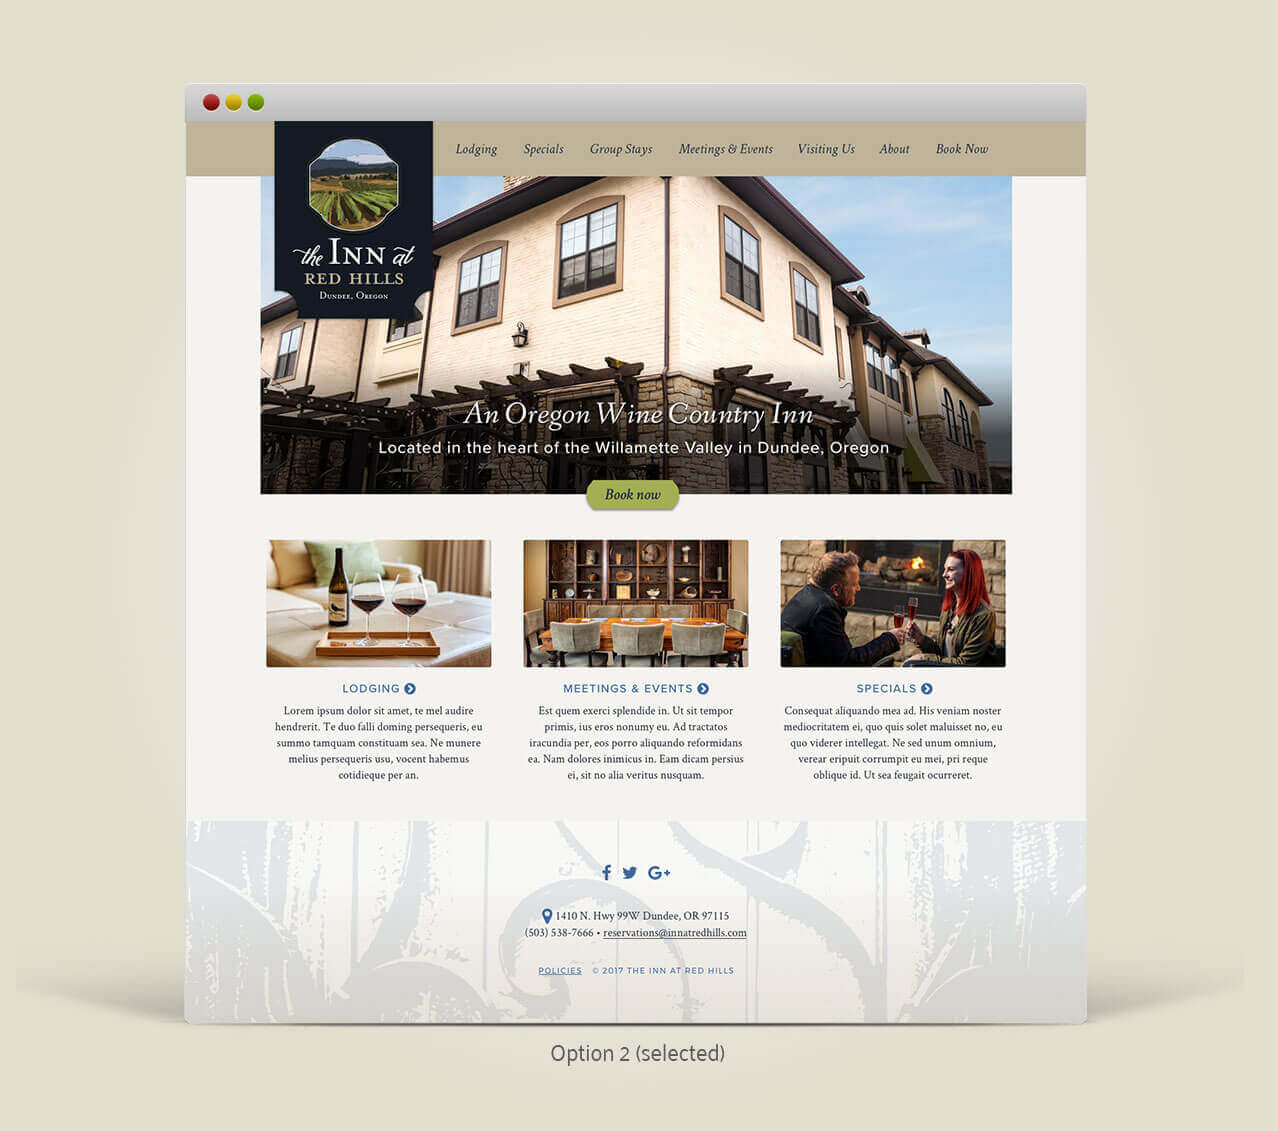 A desktop view of the Inn at Red Hills homepage.